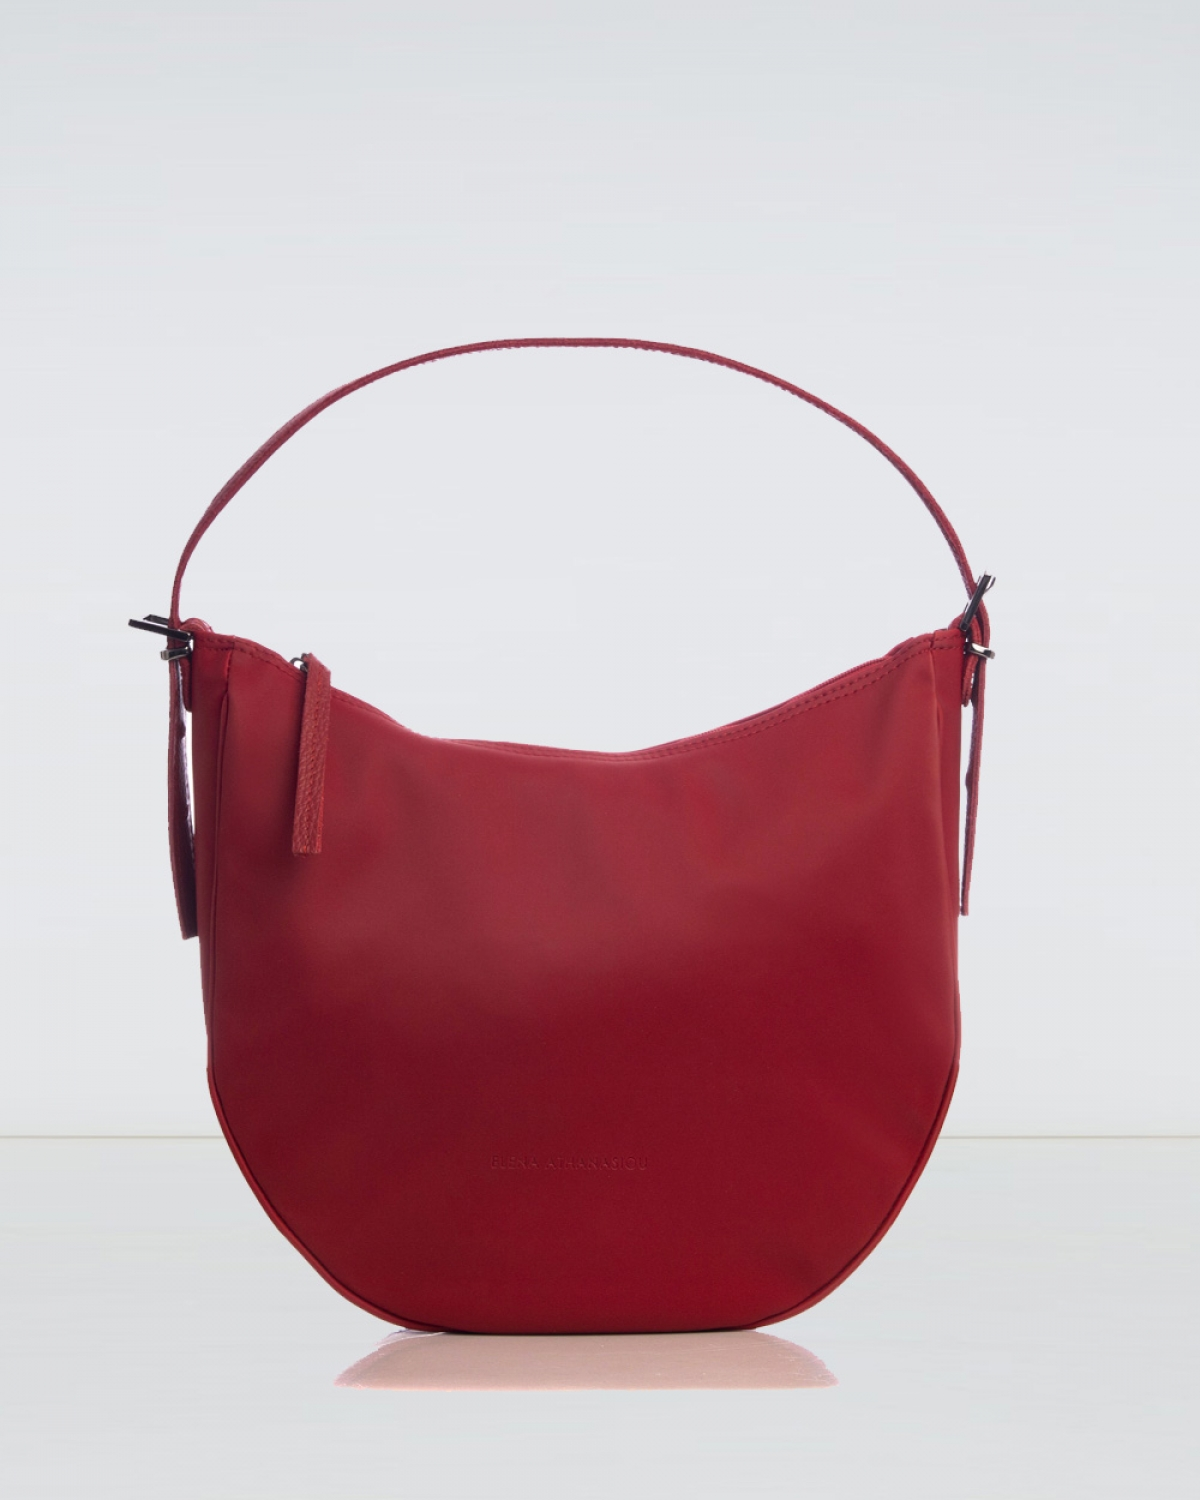 Moon Baguette Cherry Bag